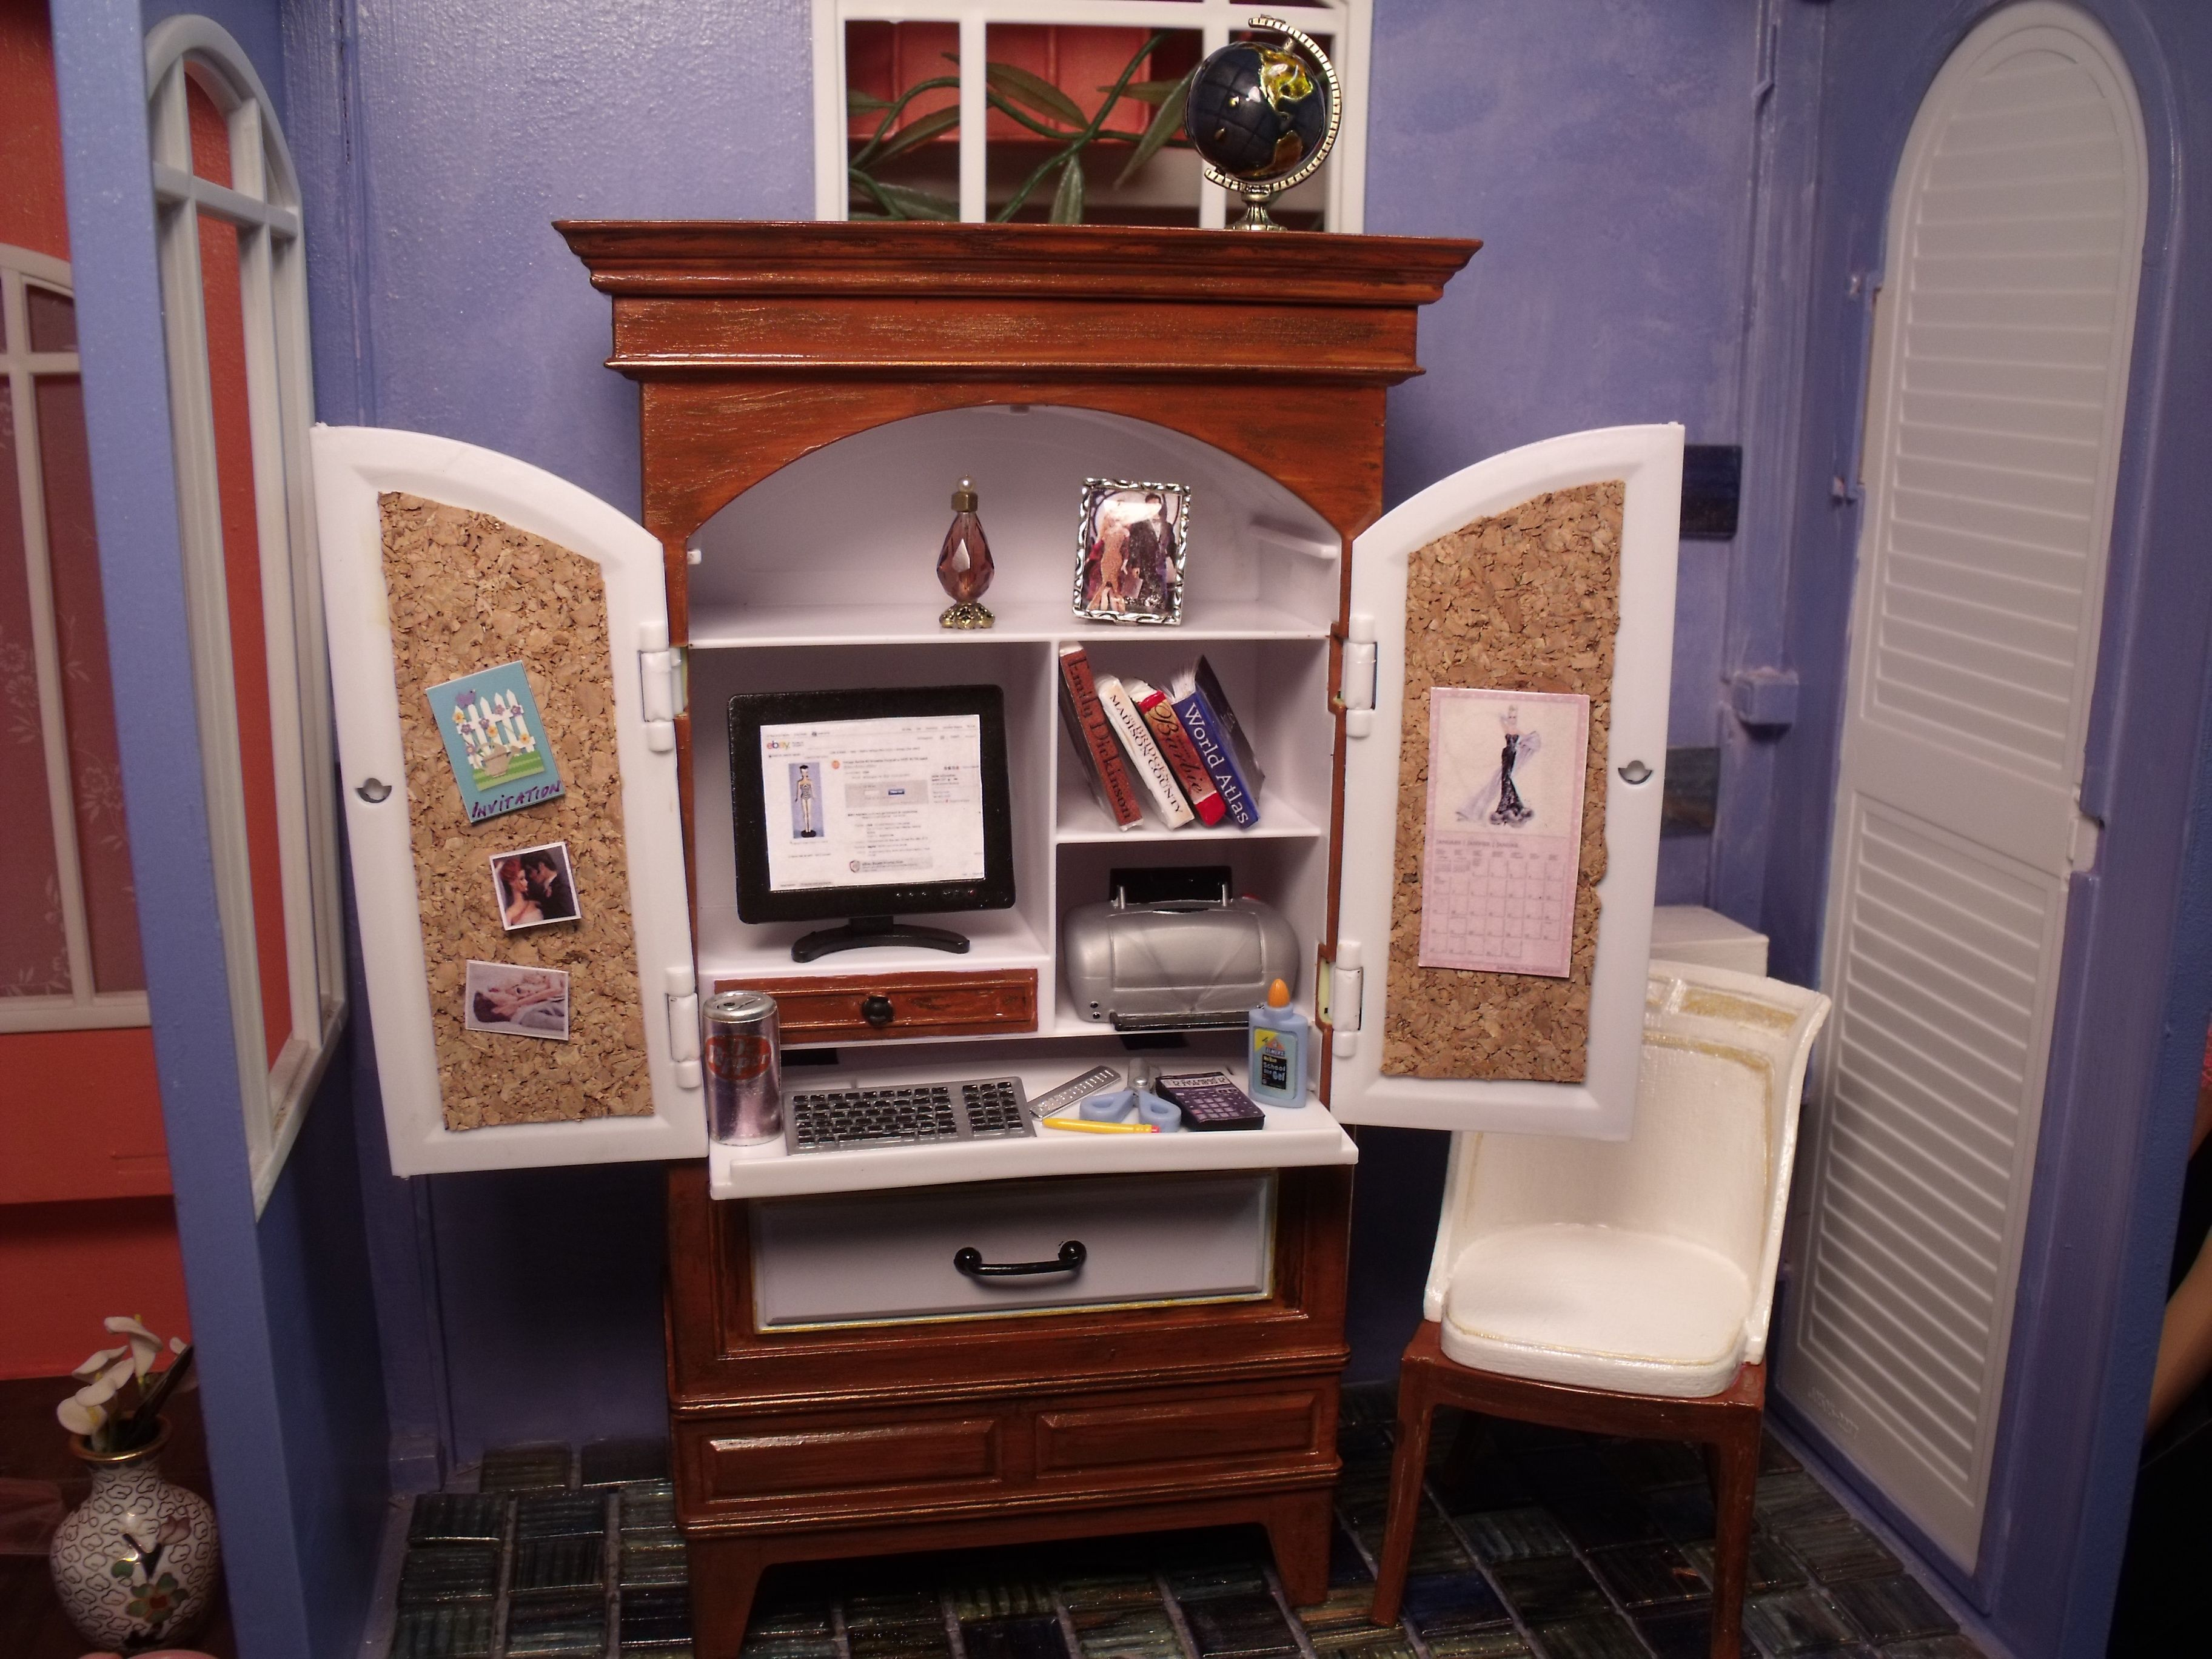 barbie doll computer hutch office furniture created by chanikava doll house diorama dollhouse. Black Bedroom Furniture Sets. Home Design Ideas